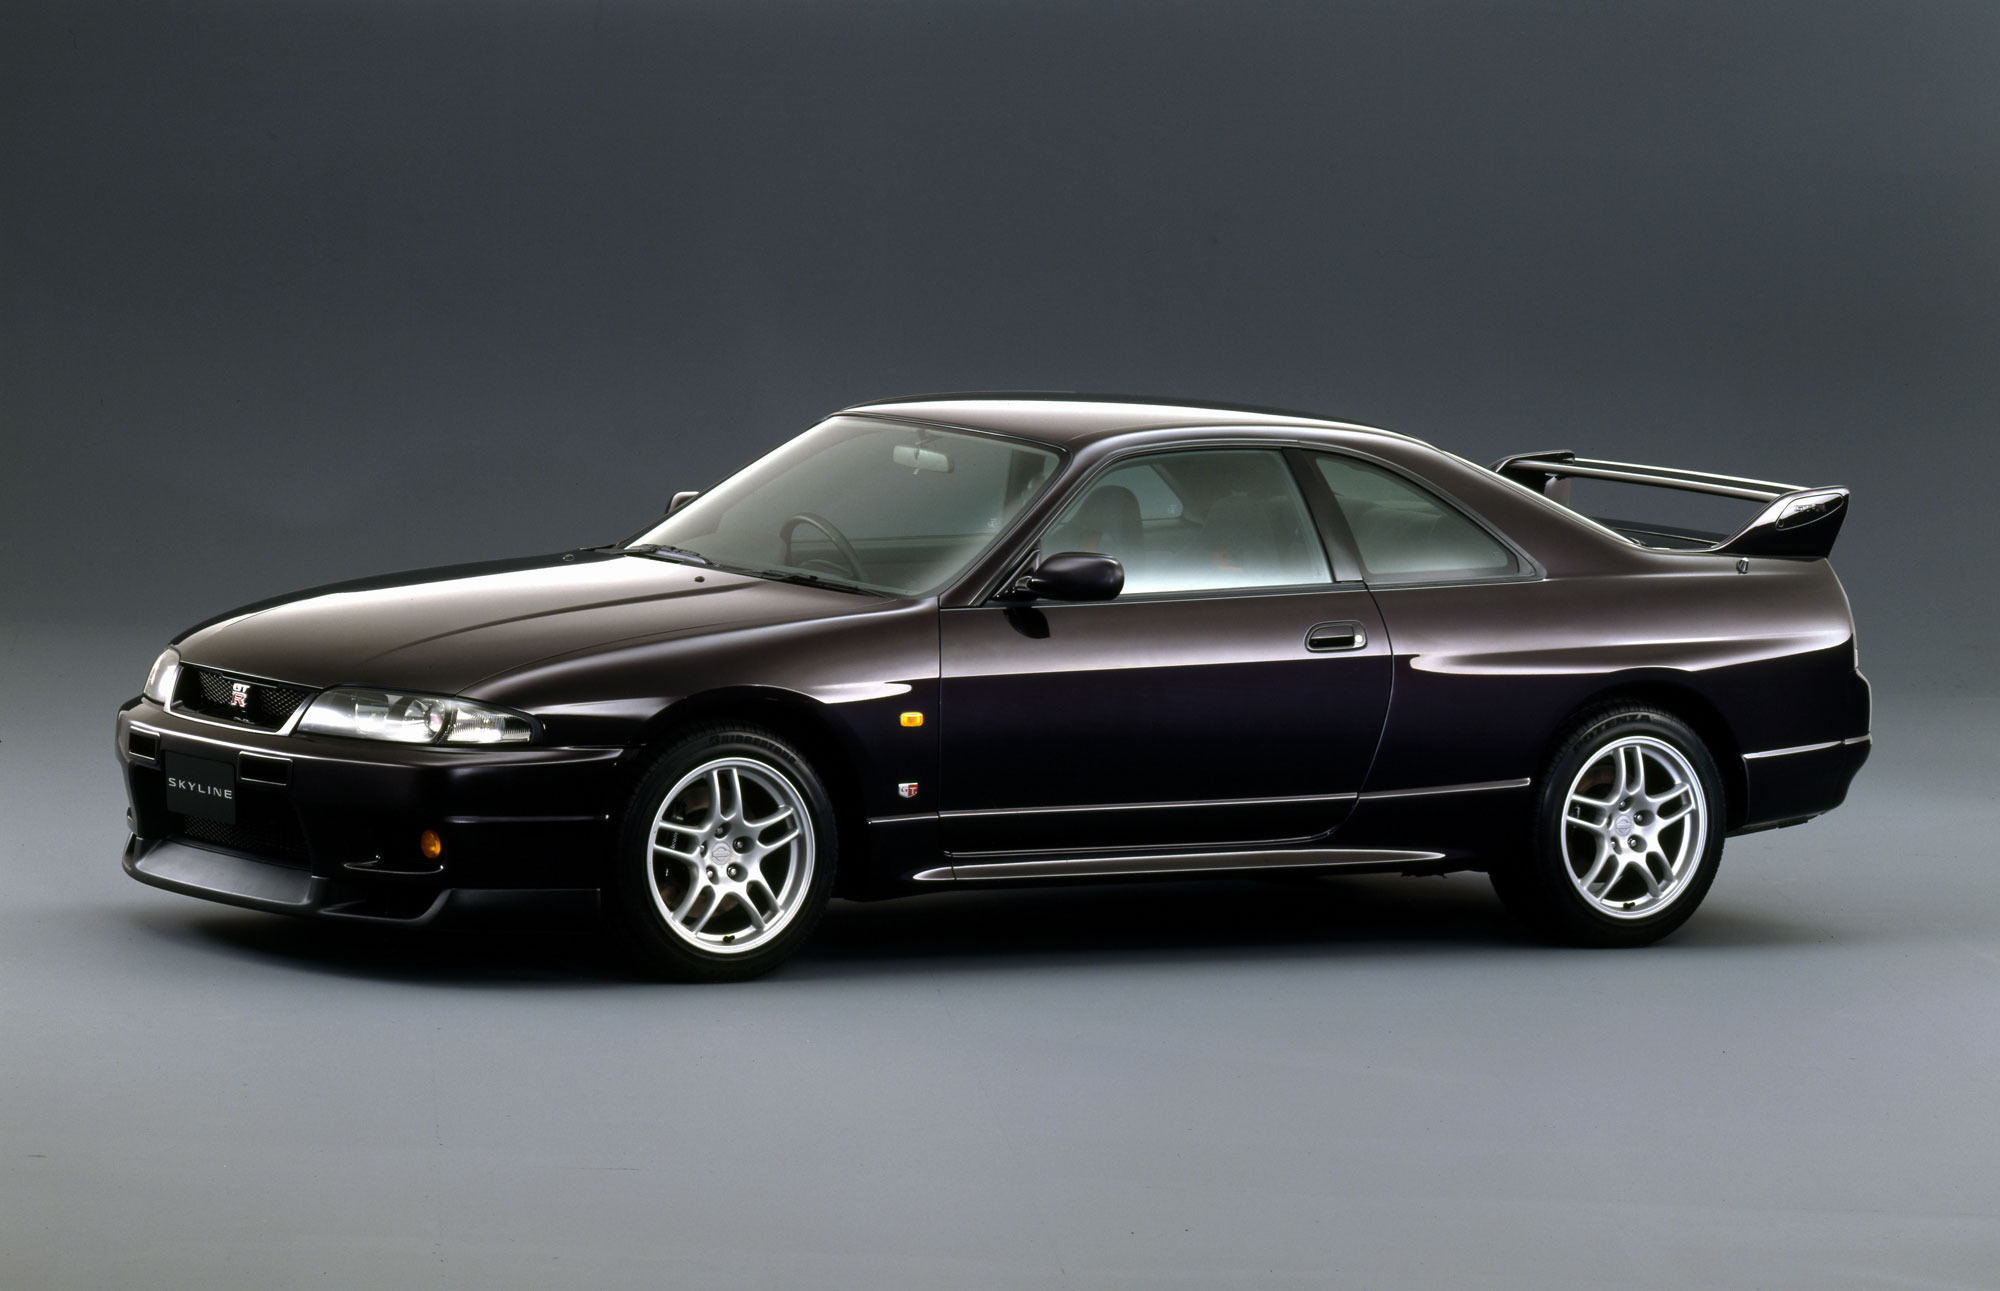 Nissan Skyline GT-R Coupe 1997